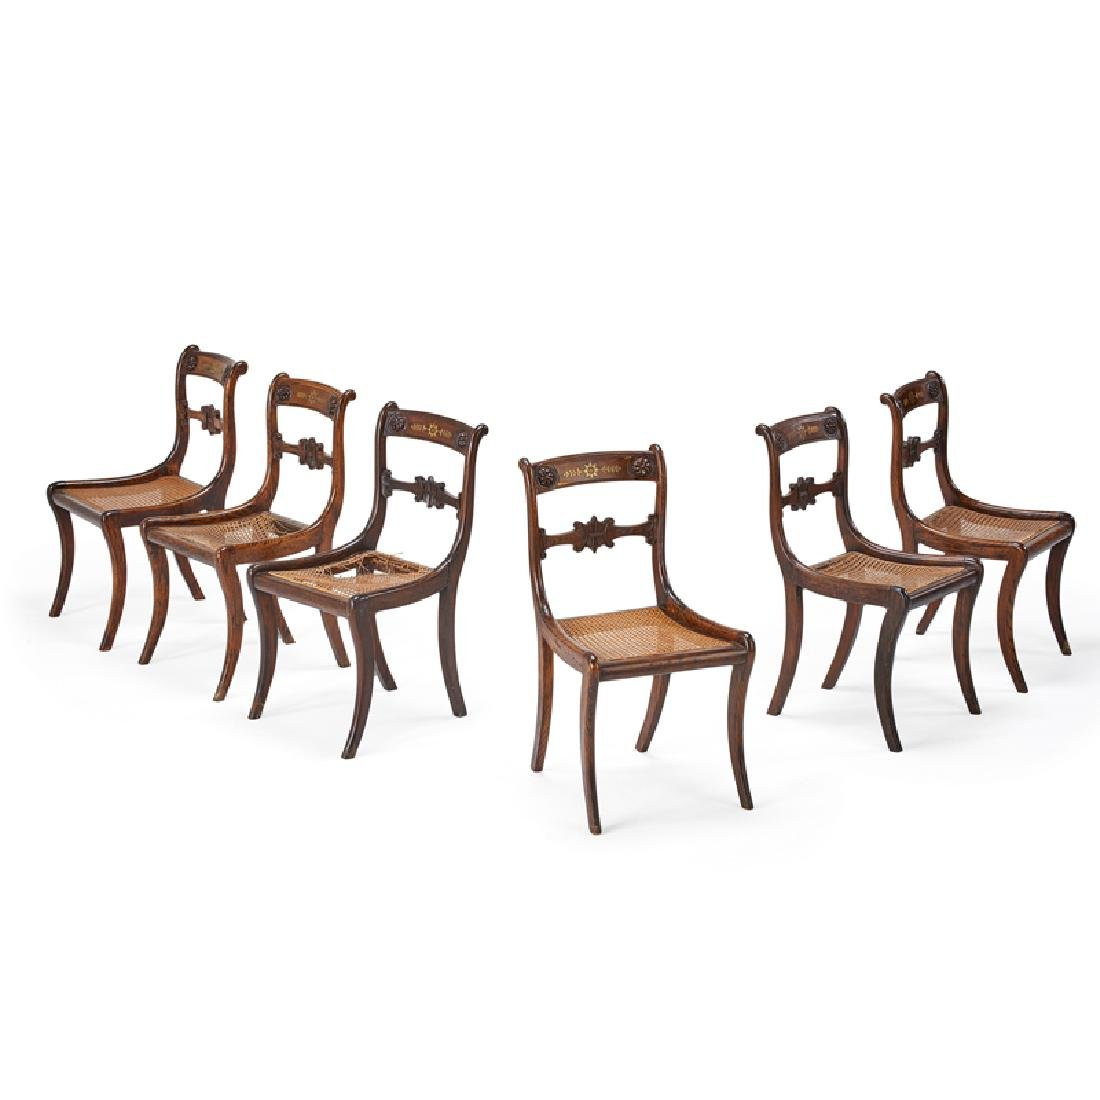 SET OF SIX REGENCY FAUX PAINTED DINING CHAIRS